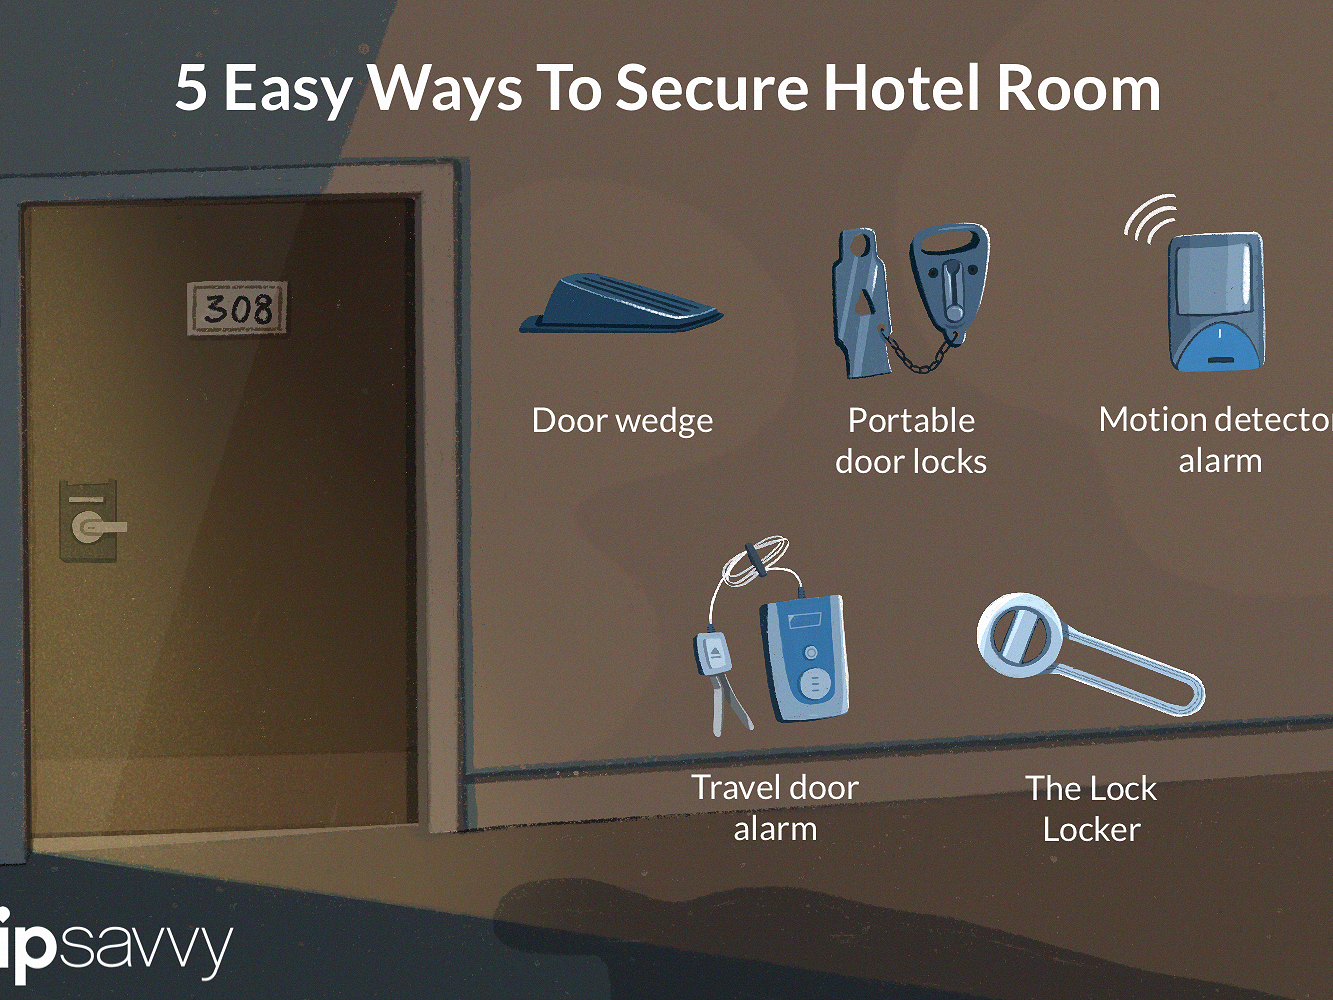 Make Hotel Rooms Secure With Portable Safety Devices